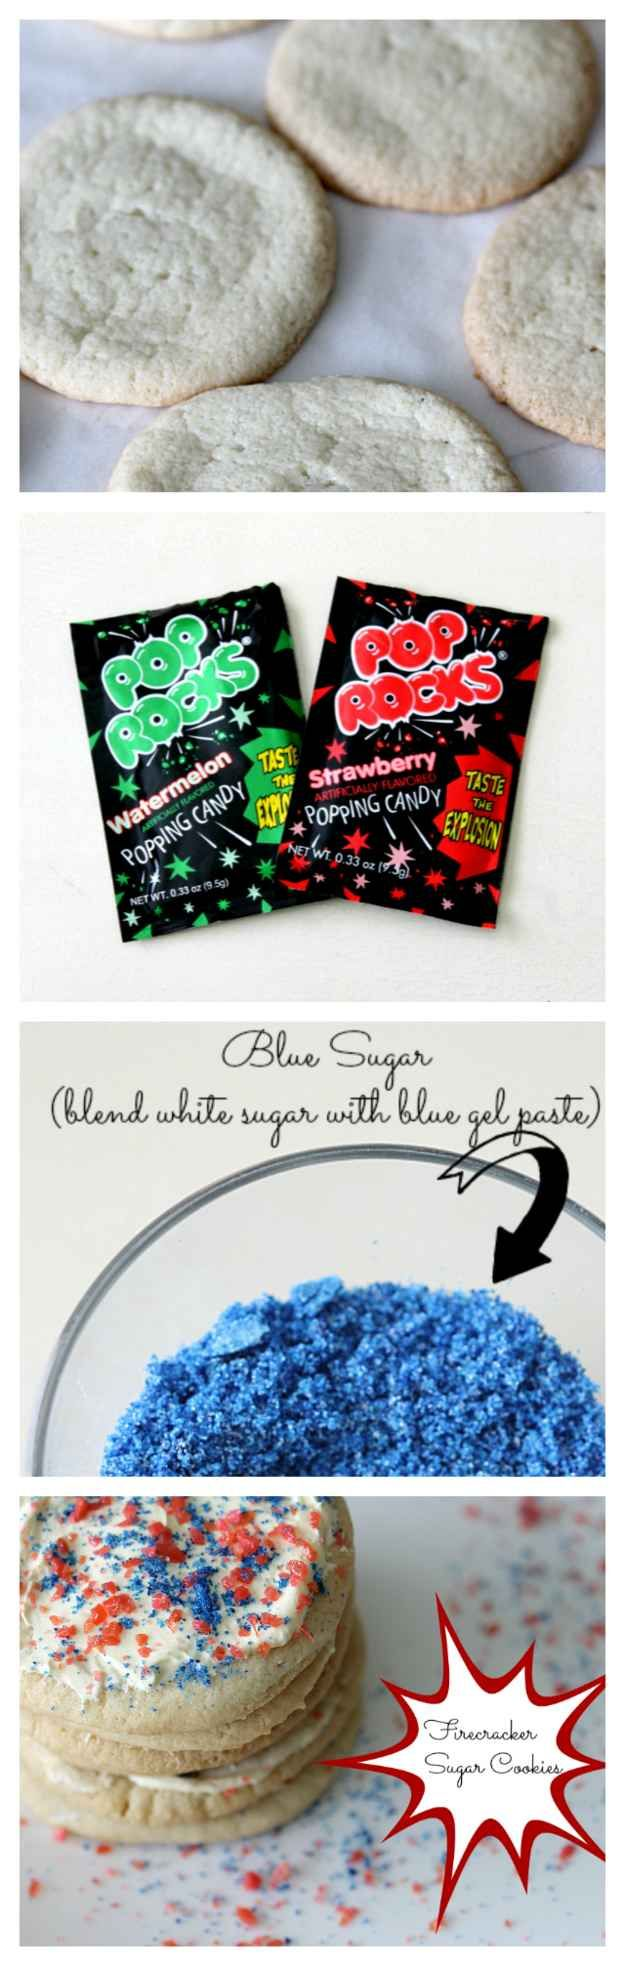 Sprinkle Pop Rocks on cookies to make them into edible firecrackers.